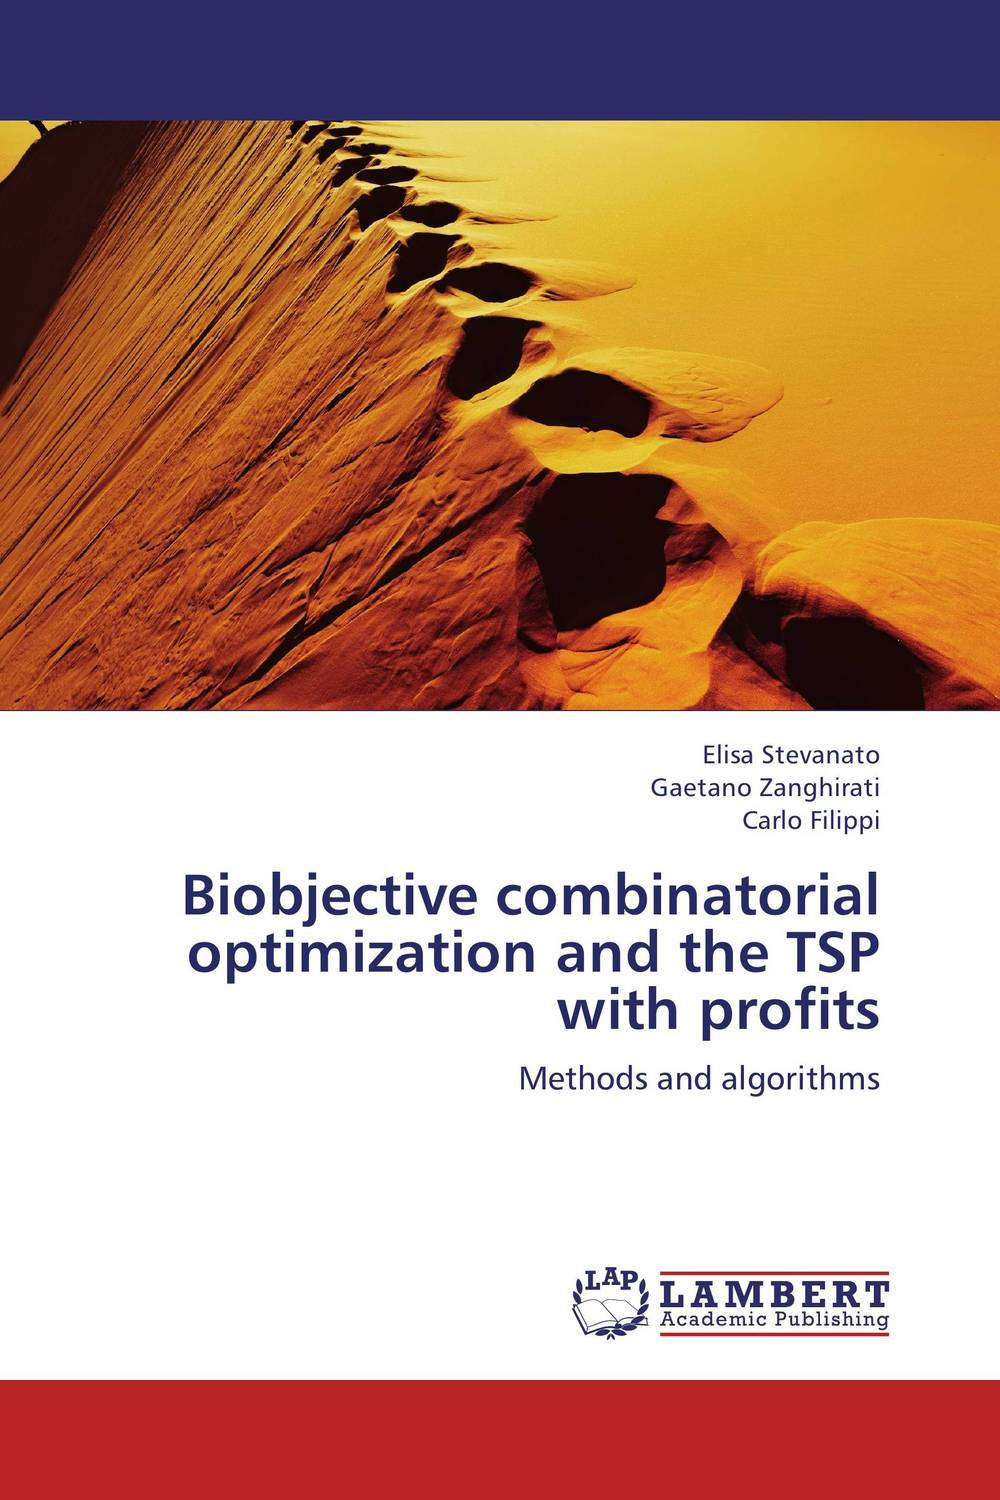 Biobjective combinatorial optimization and the TSP with profits belousov a security features of banknotes and other documents methods of authentication manual денежные билеты бланки ценных бумаг и документов